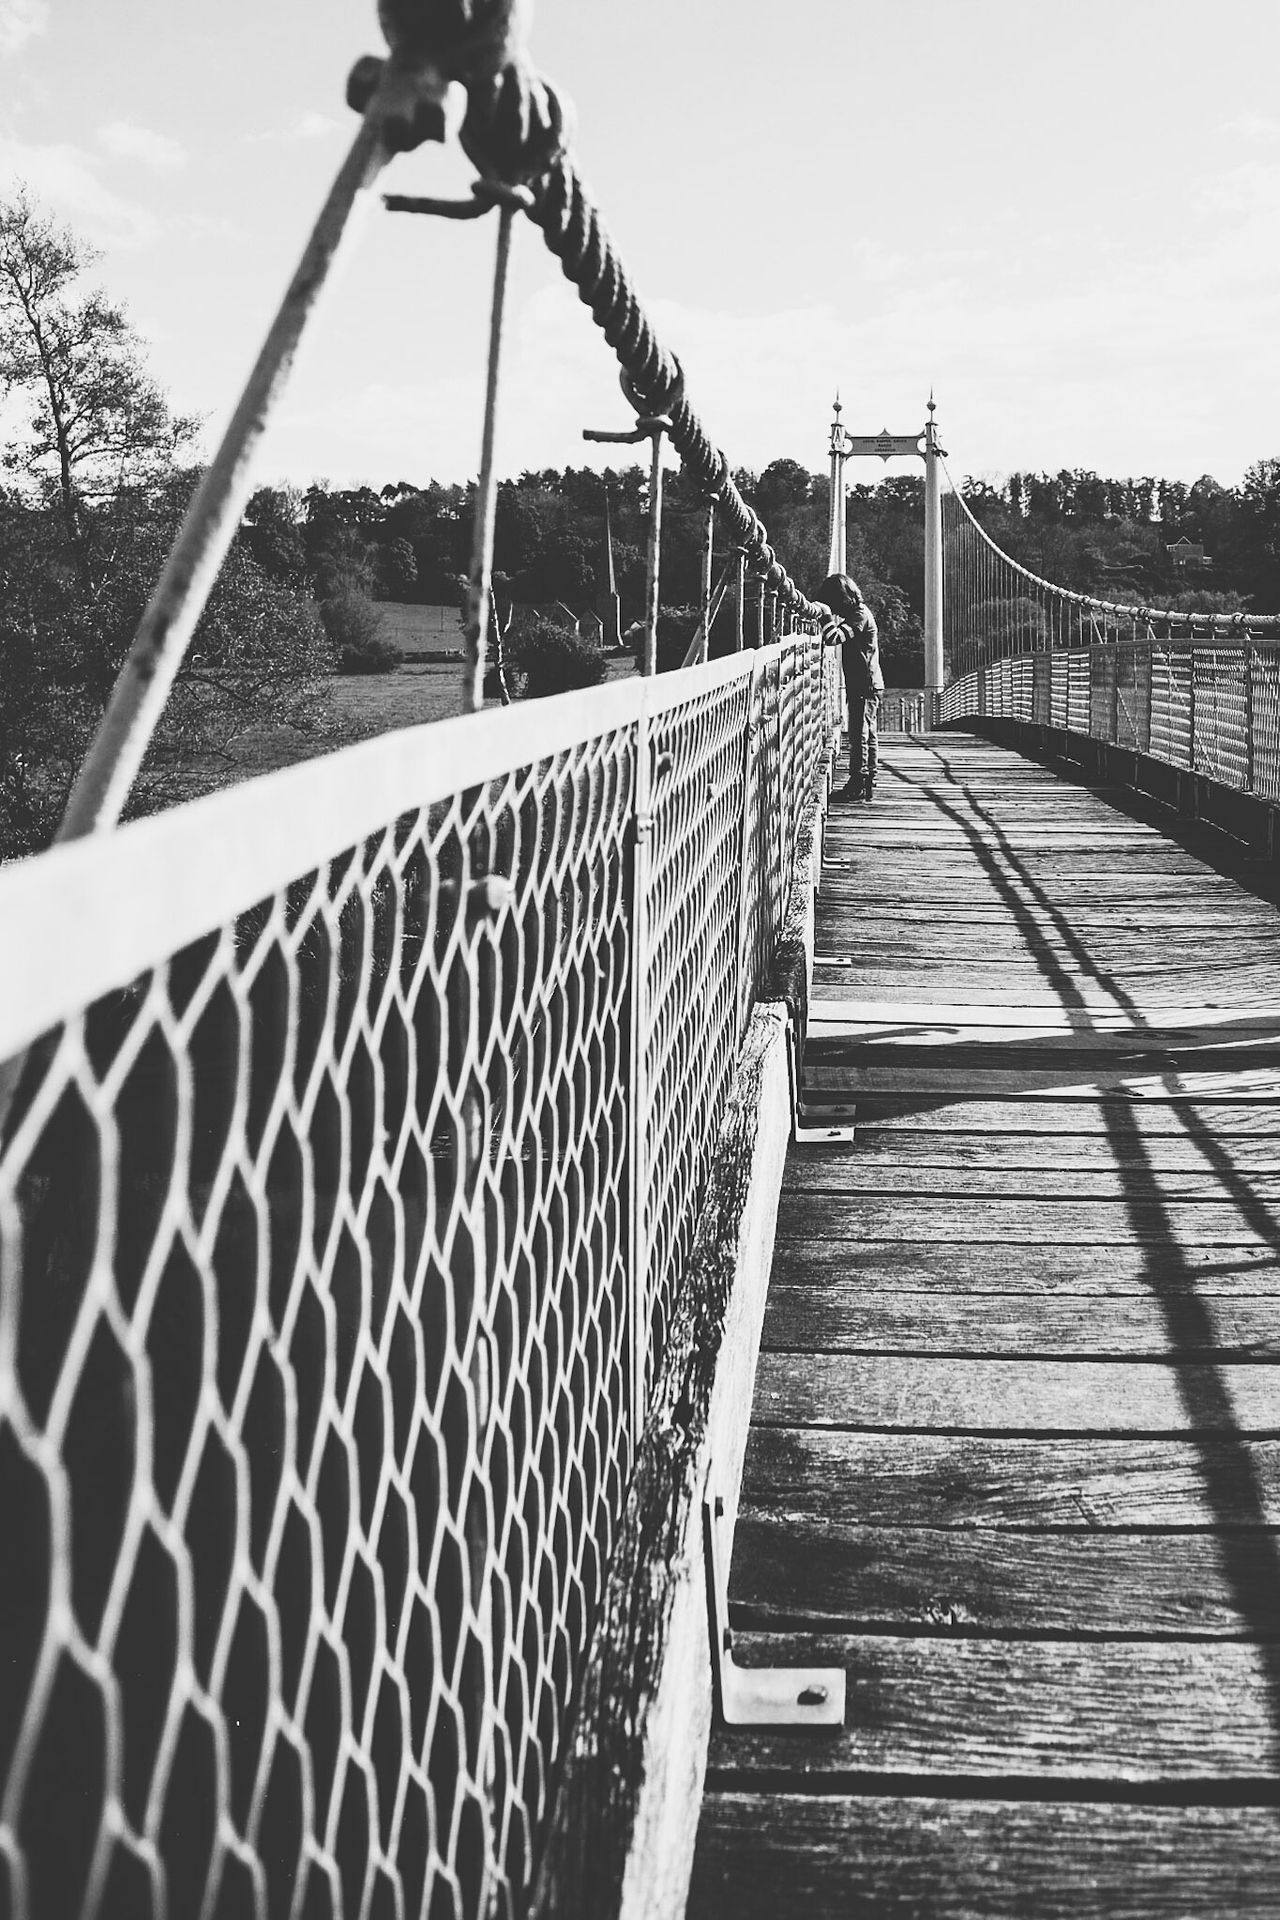 Railing Sky Outdoors Day Lauraloophotography Bridge Suspension Bridge Looking Black And White